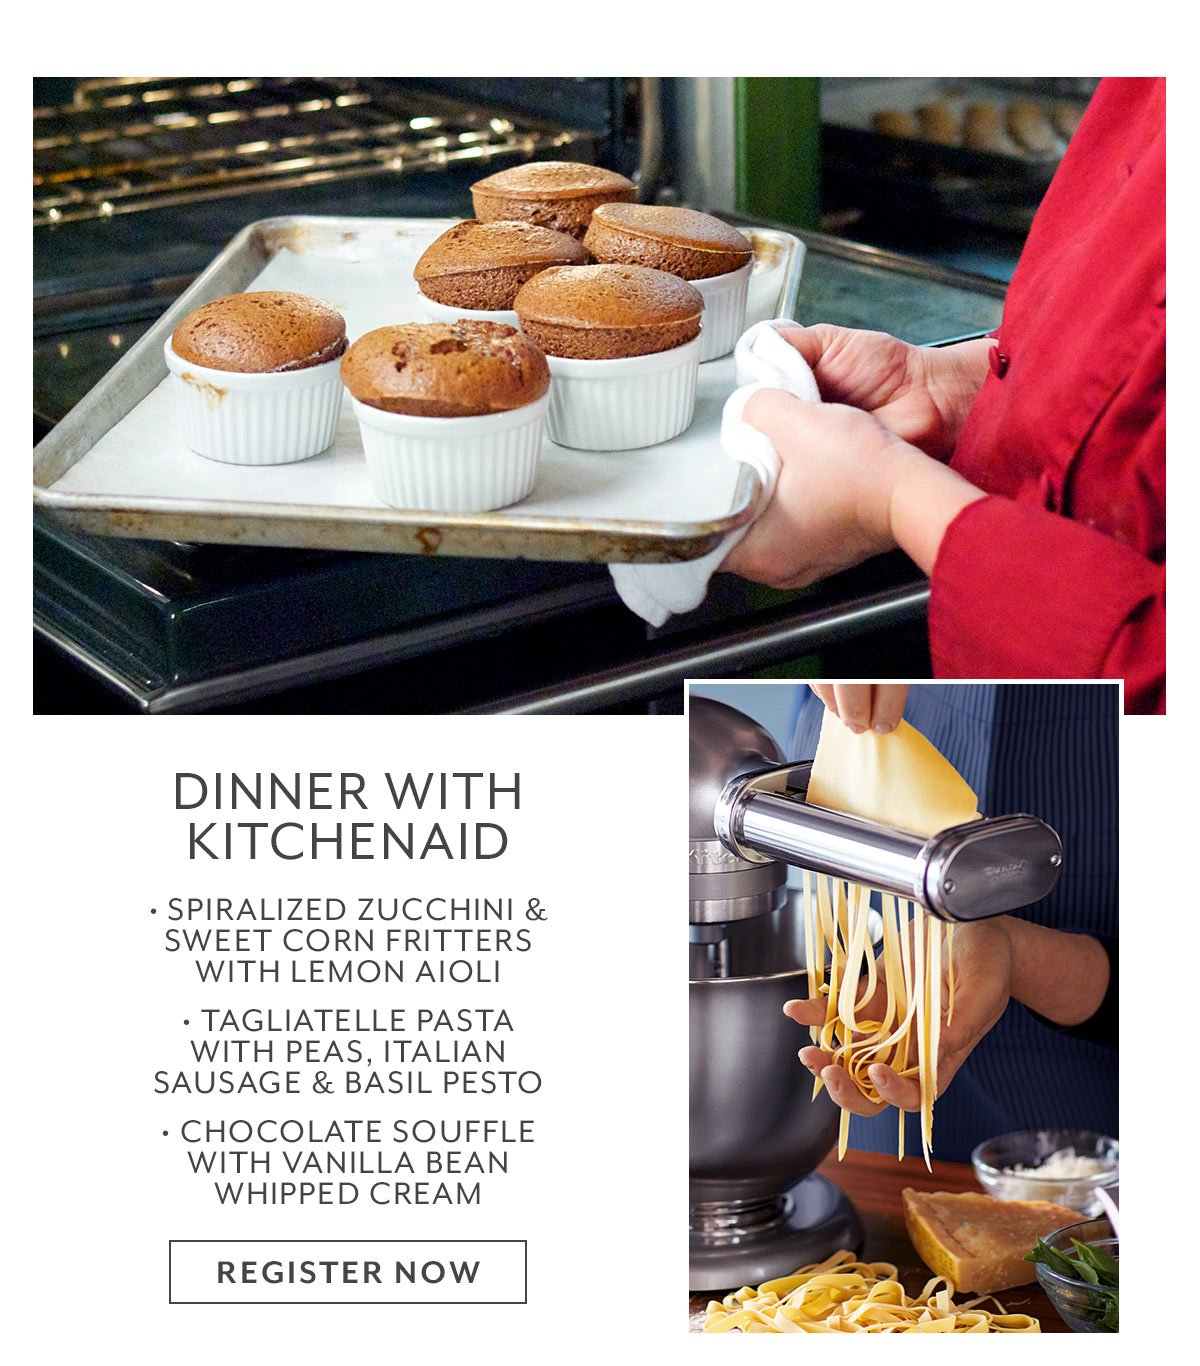 Class: Dinner with KitchenAid